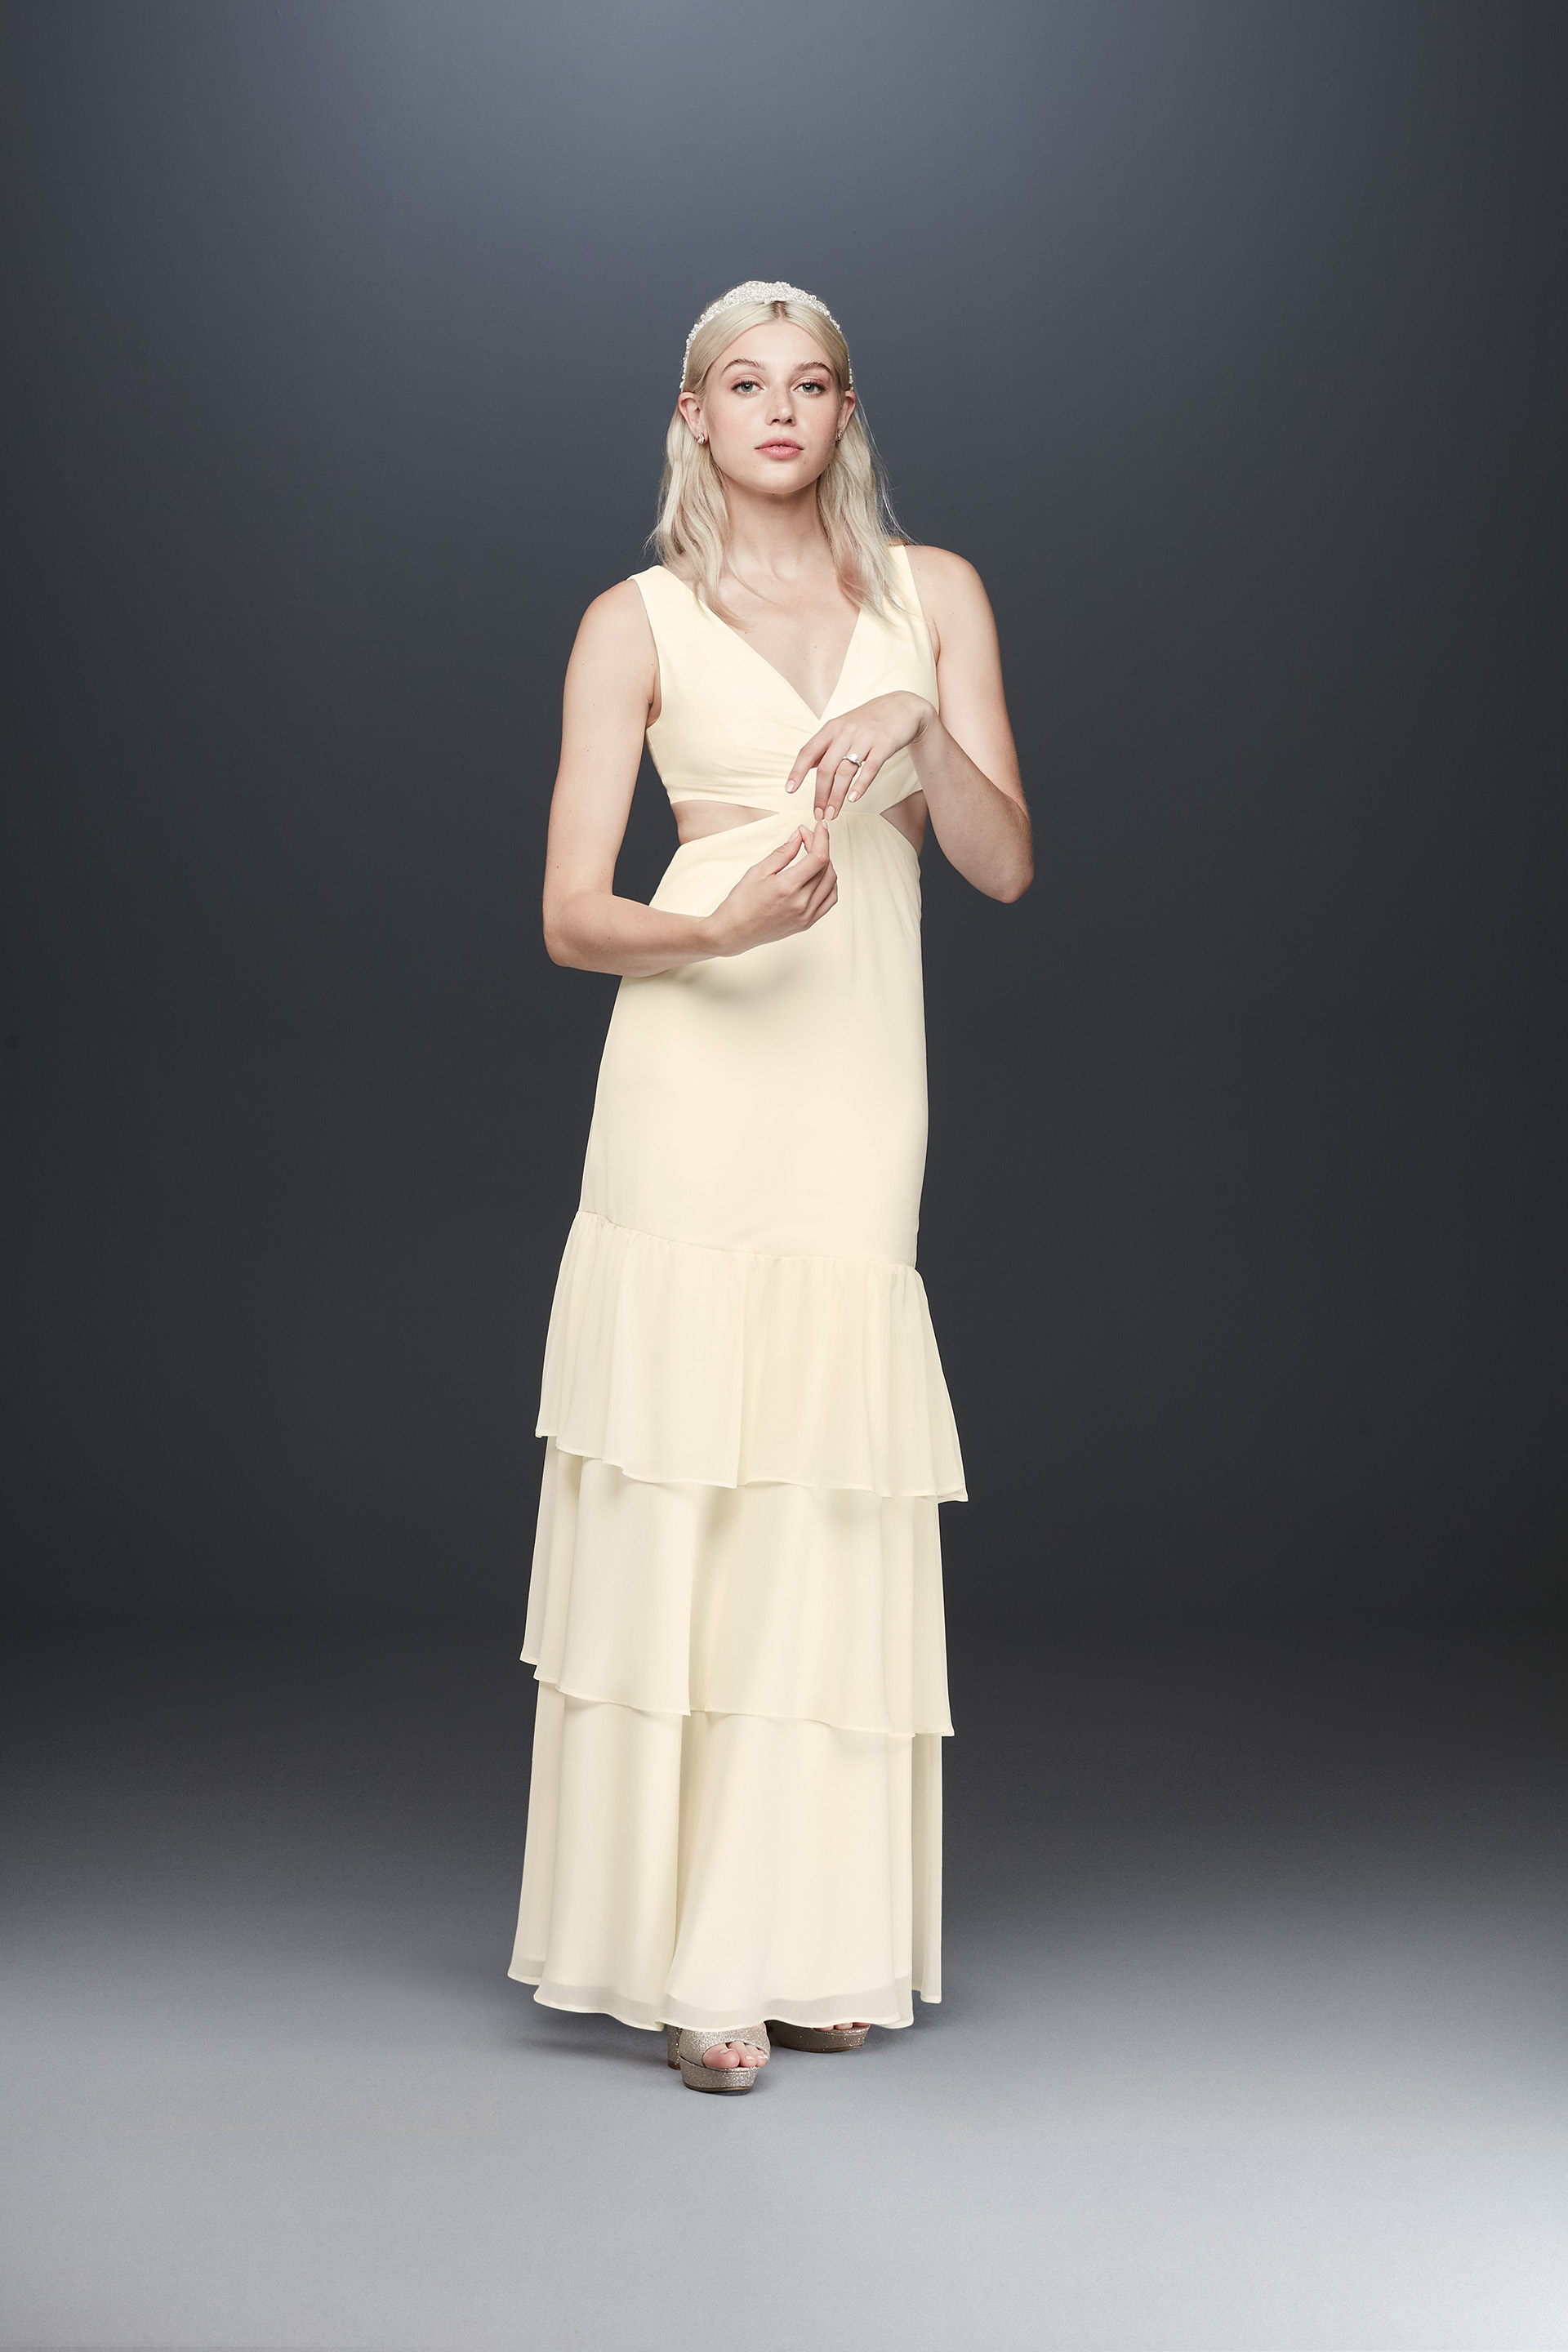 Bride tiered skirt wedding dress with side cutouts from Fame & Partners x David's Bridal collection